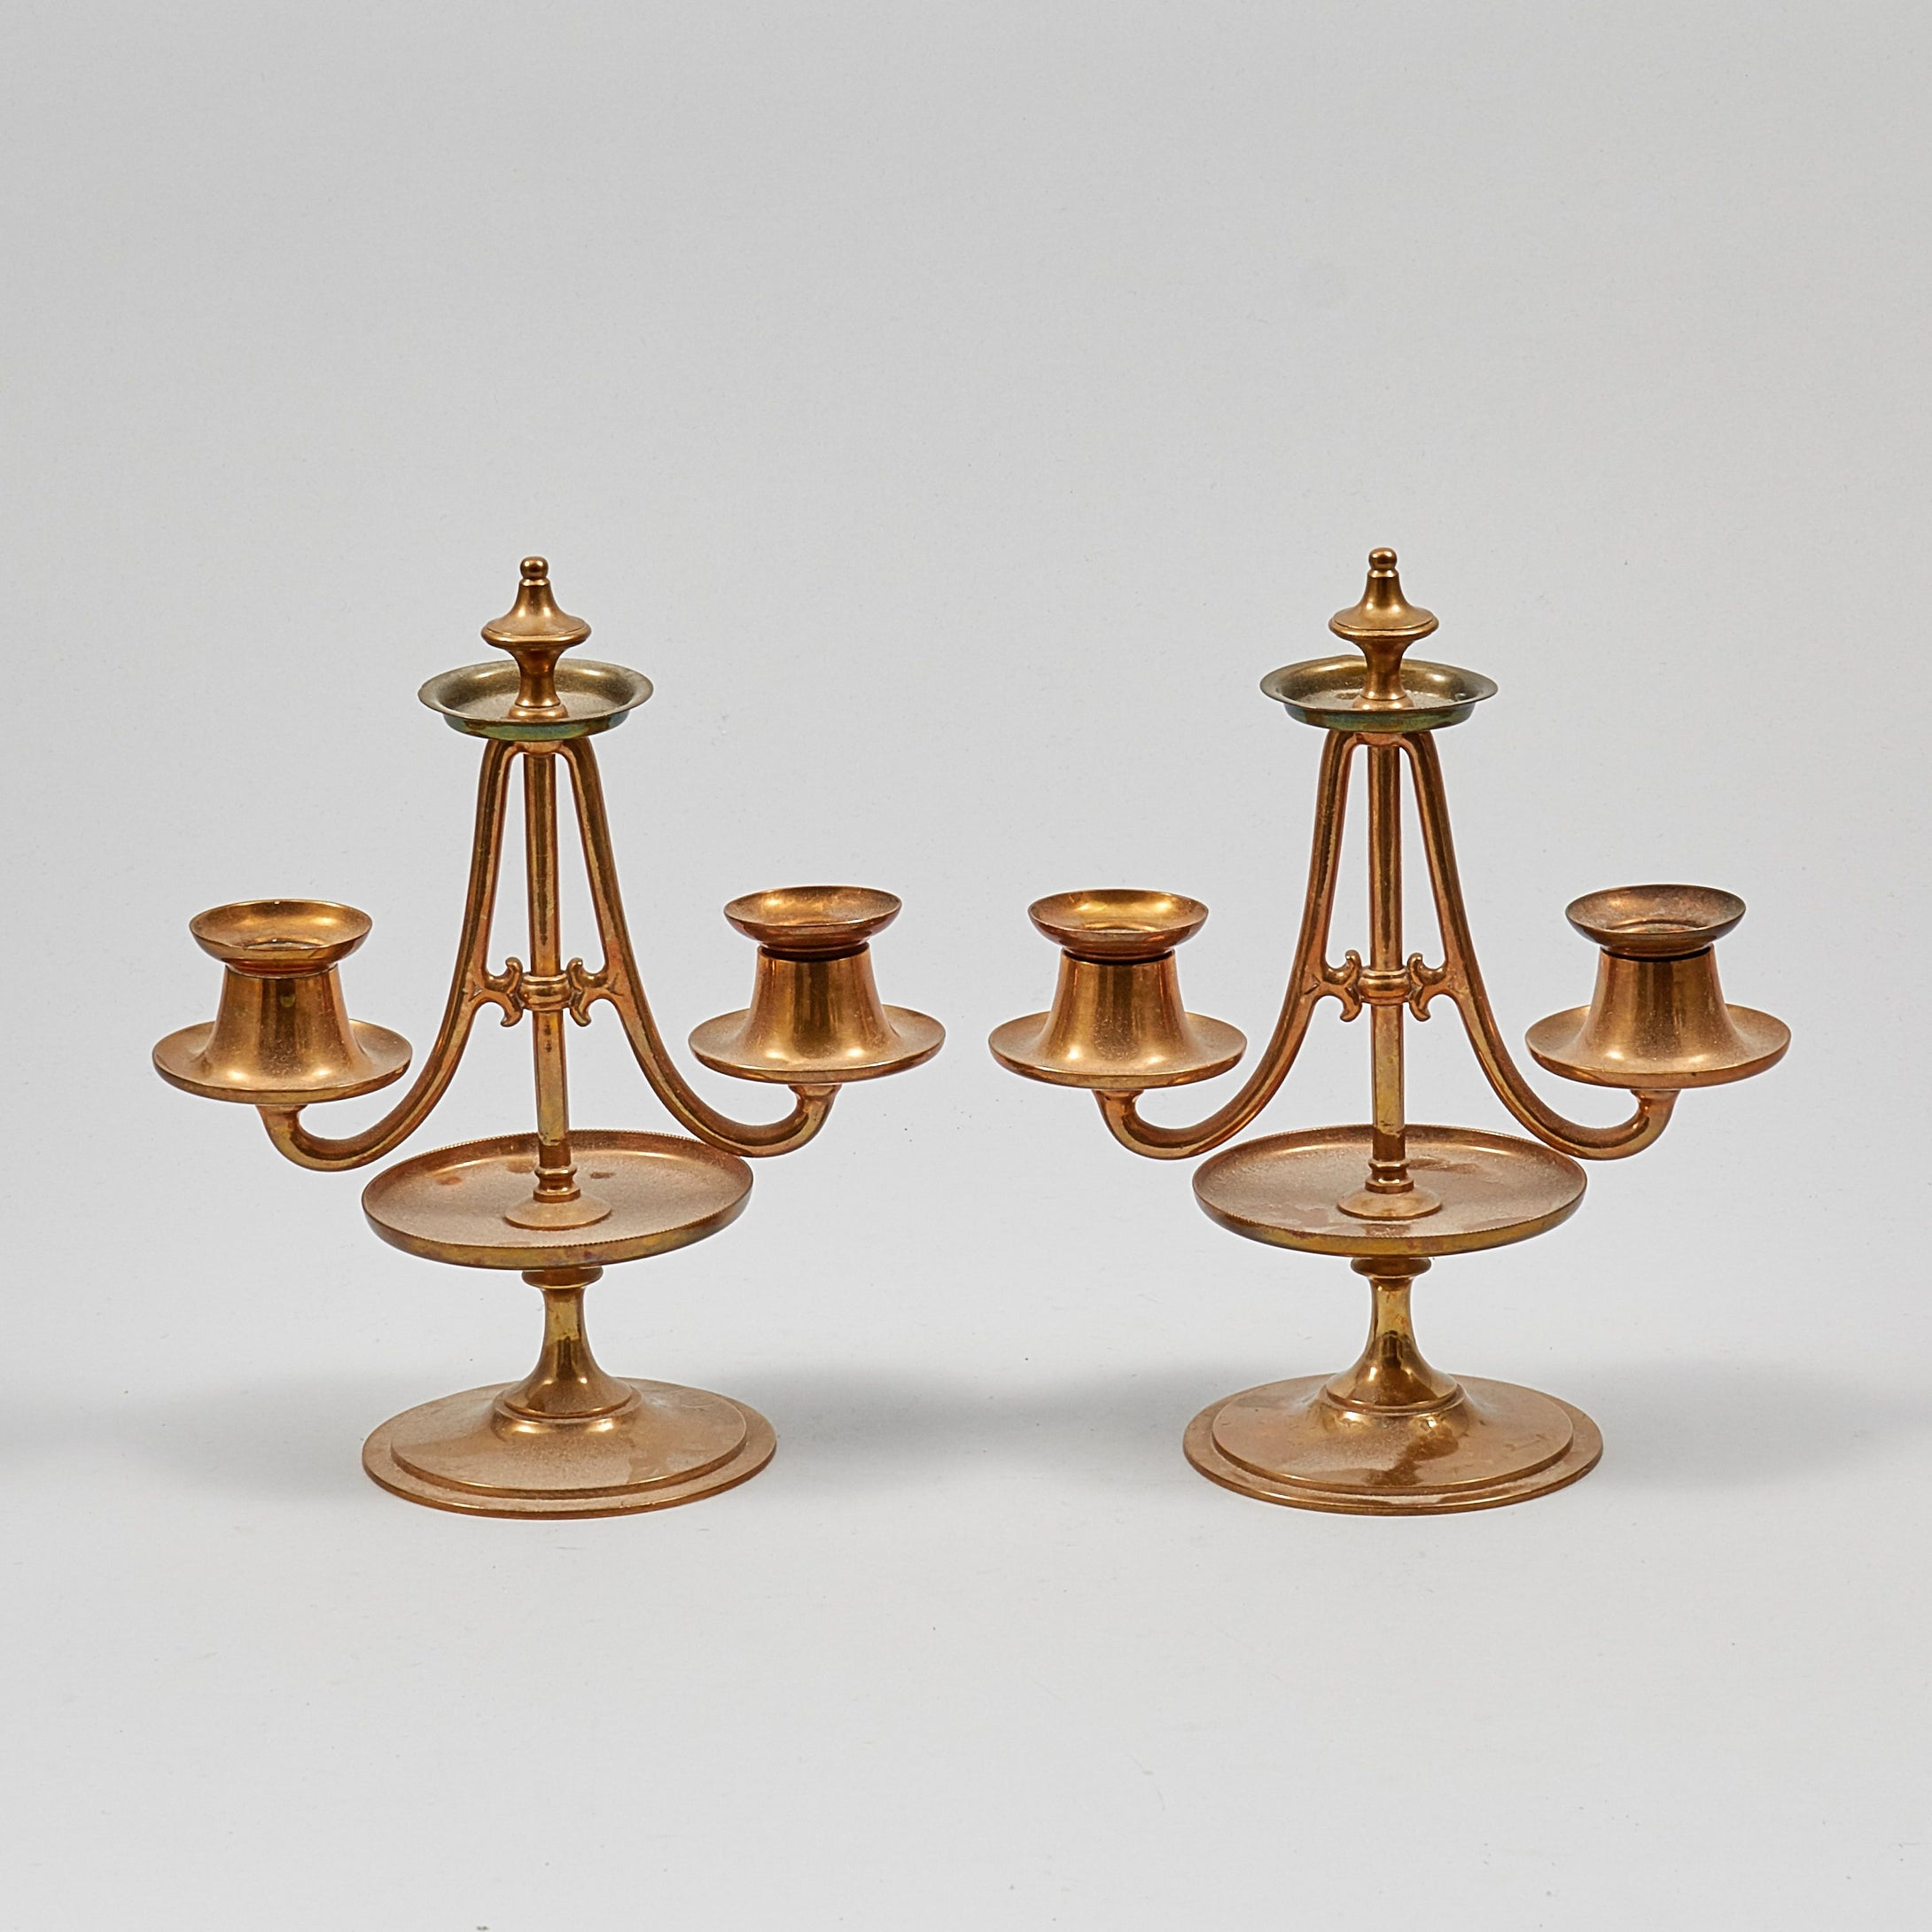 Paret ljusstakar i mässing från Gusum 21 cm höga. Pair of brass candle sticks by Gusum. H: 21cm/8,3